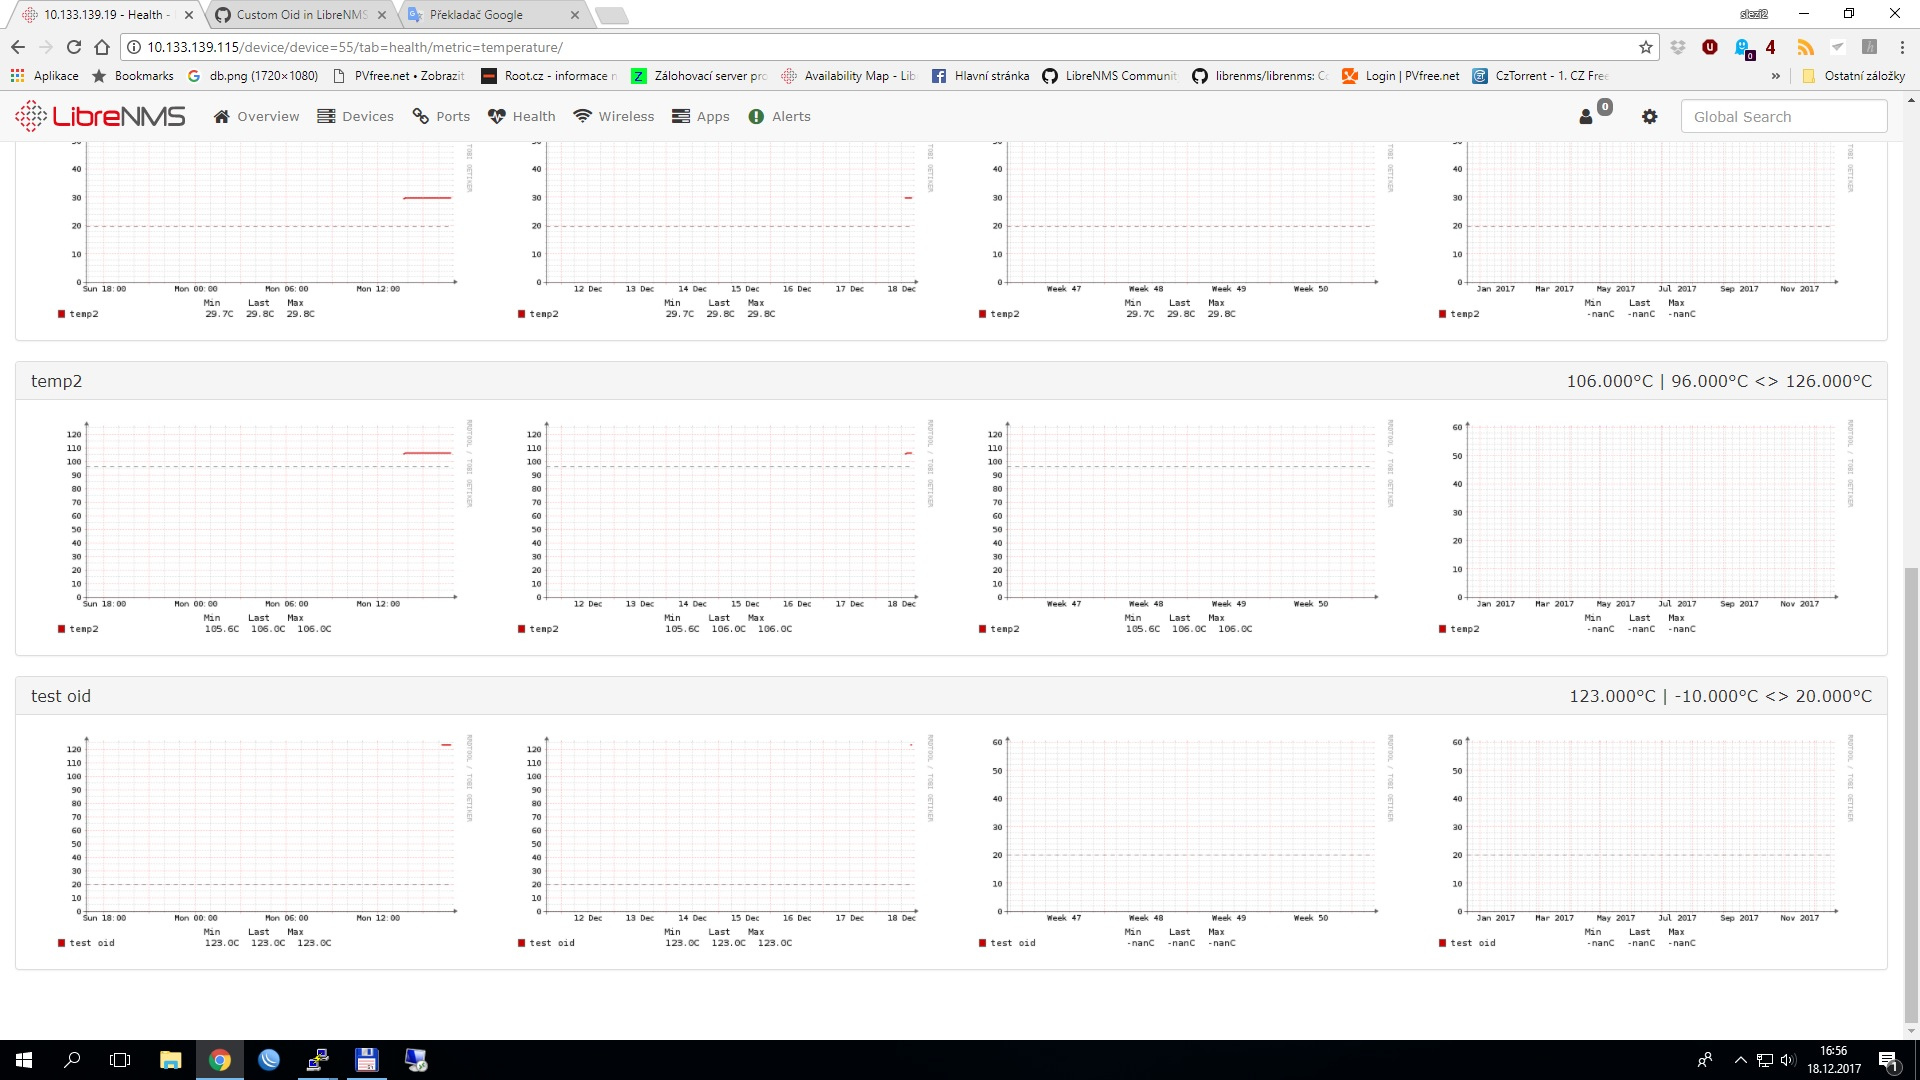 Graphing PPPoE sessions on Cisco device - Help - LibreNMS Community